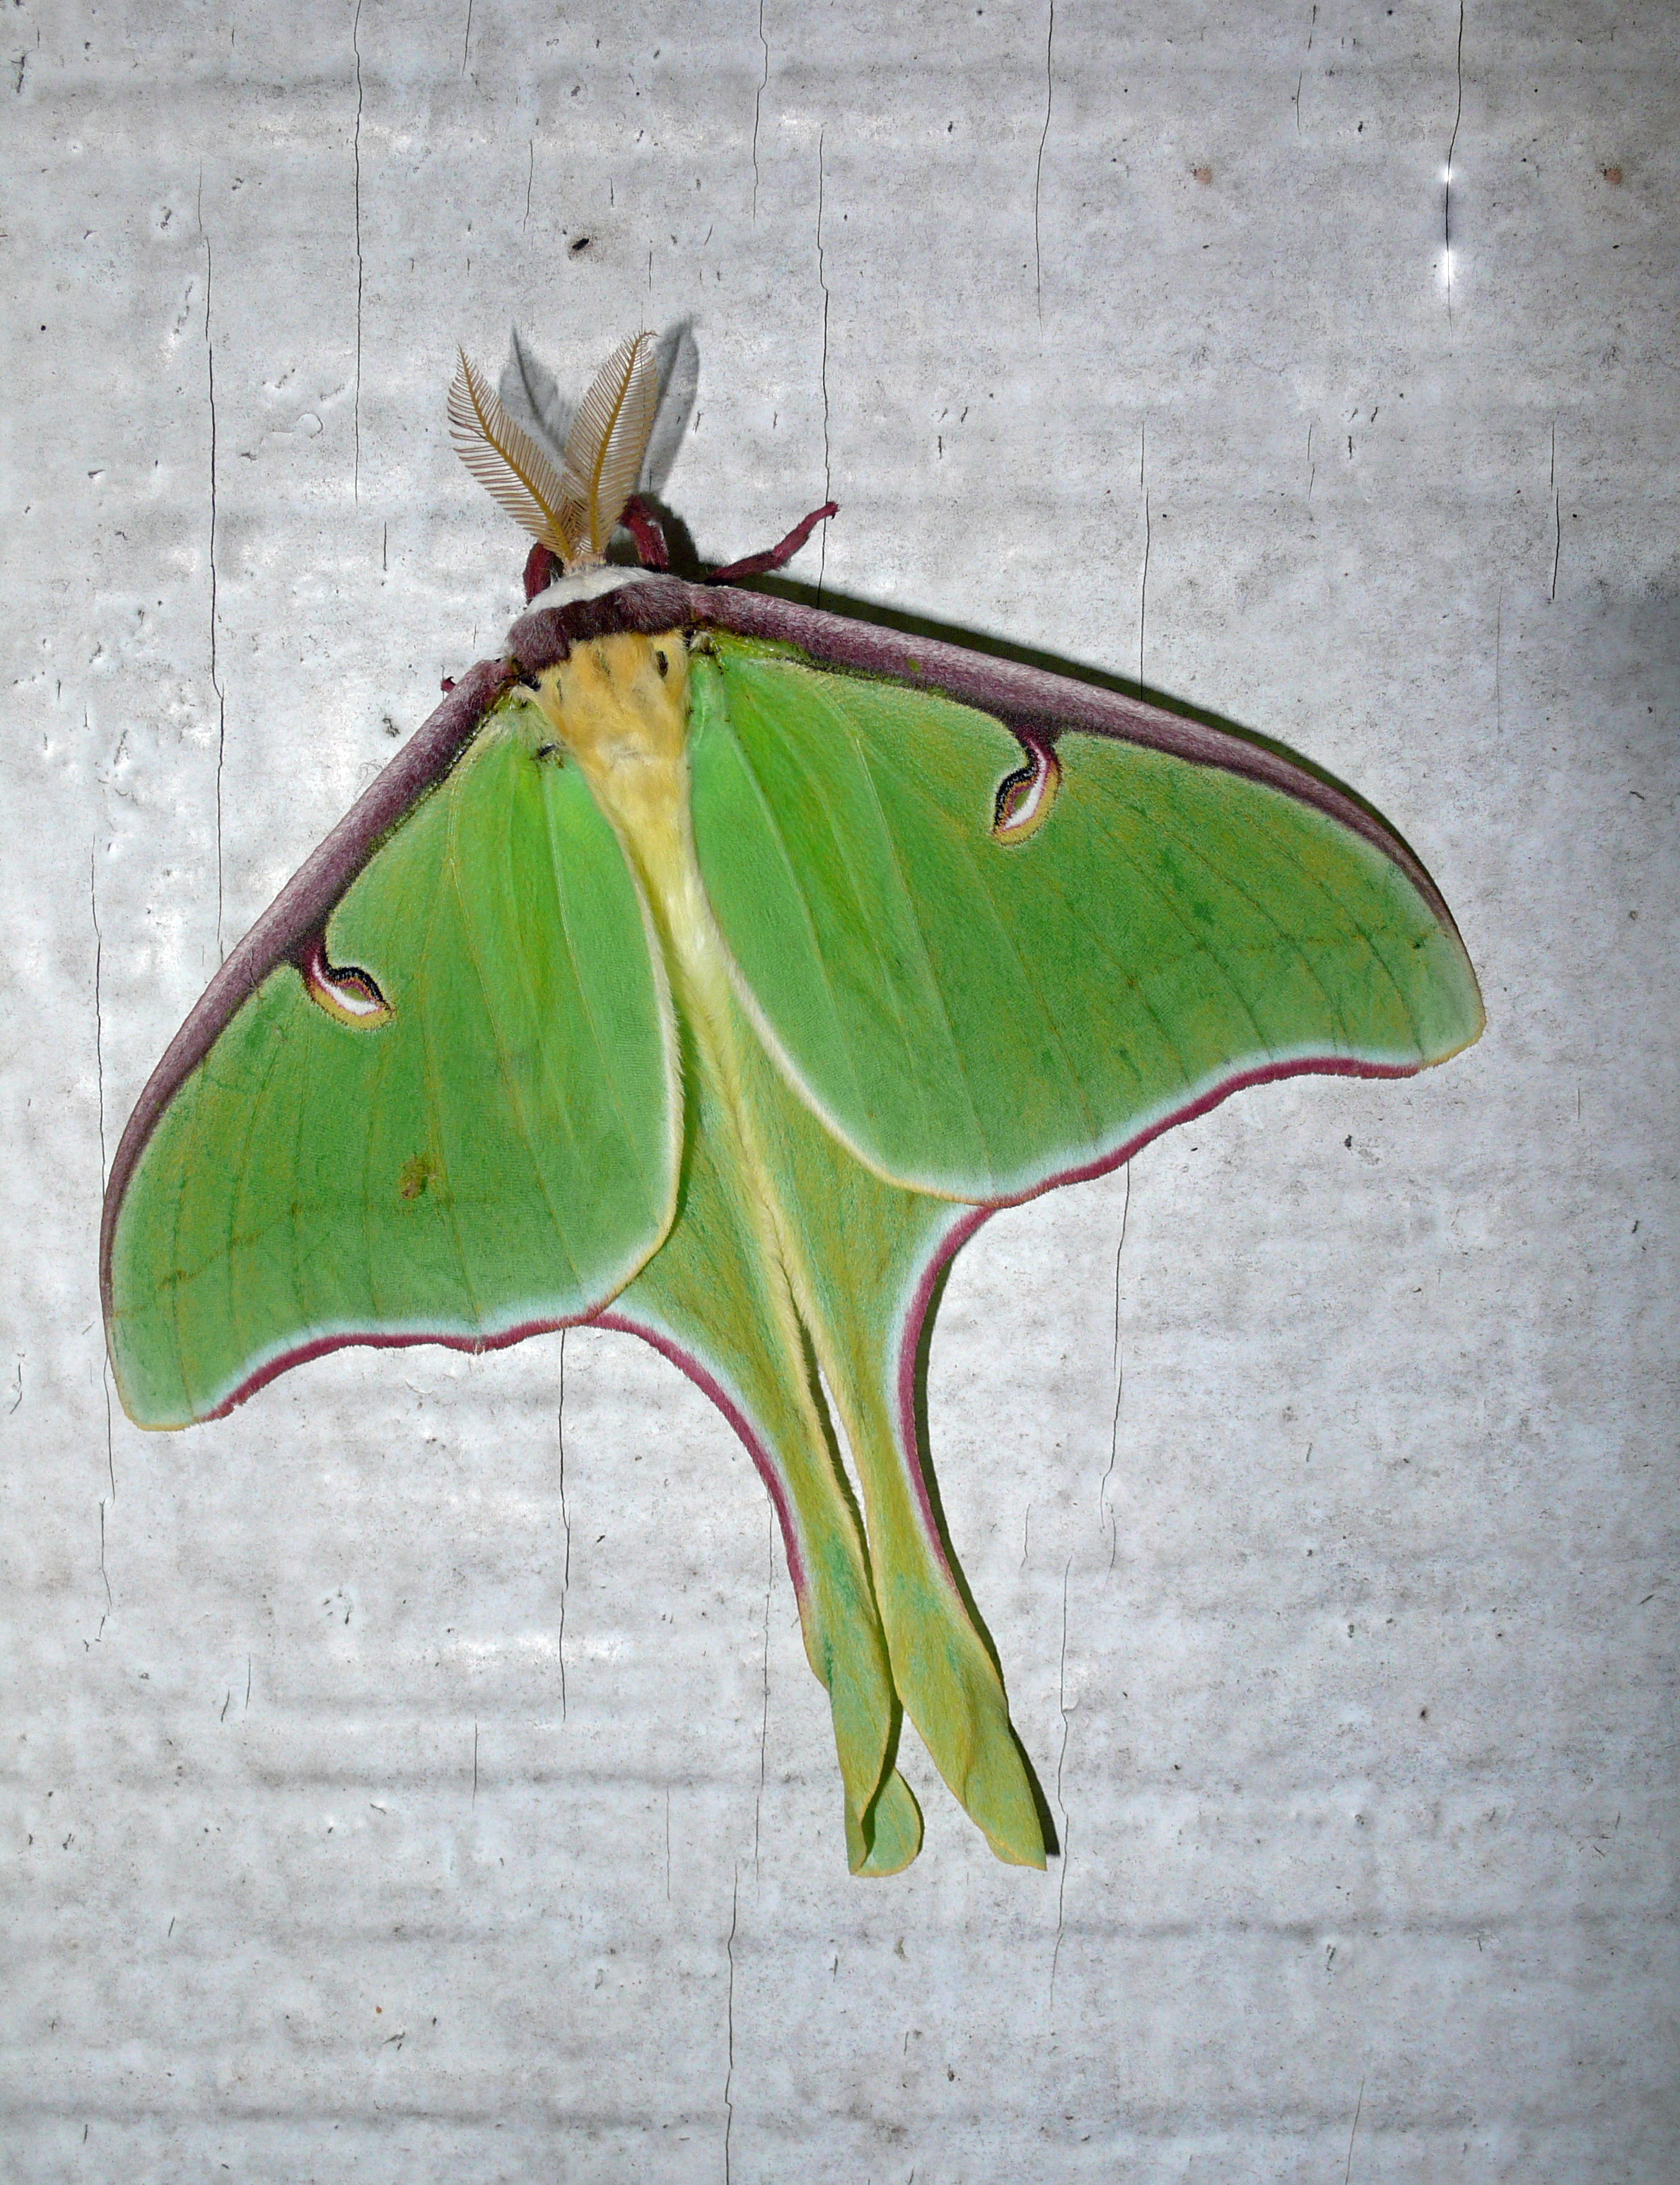 A luna moth (Actias luna), one of several stunning species that you might see in Pennsylvania.